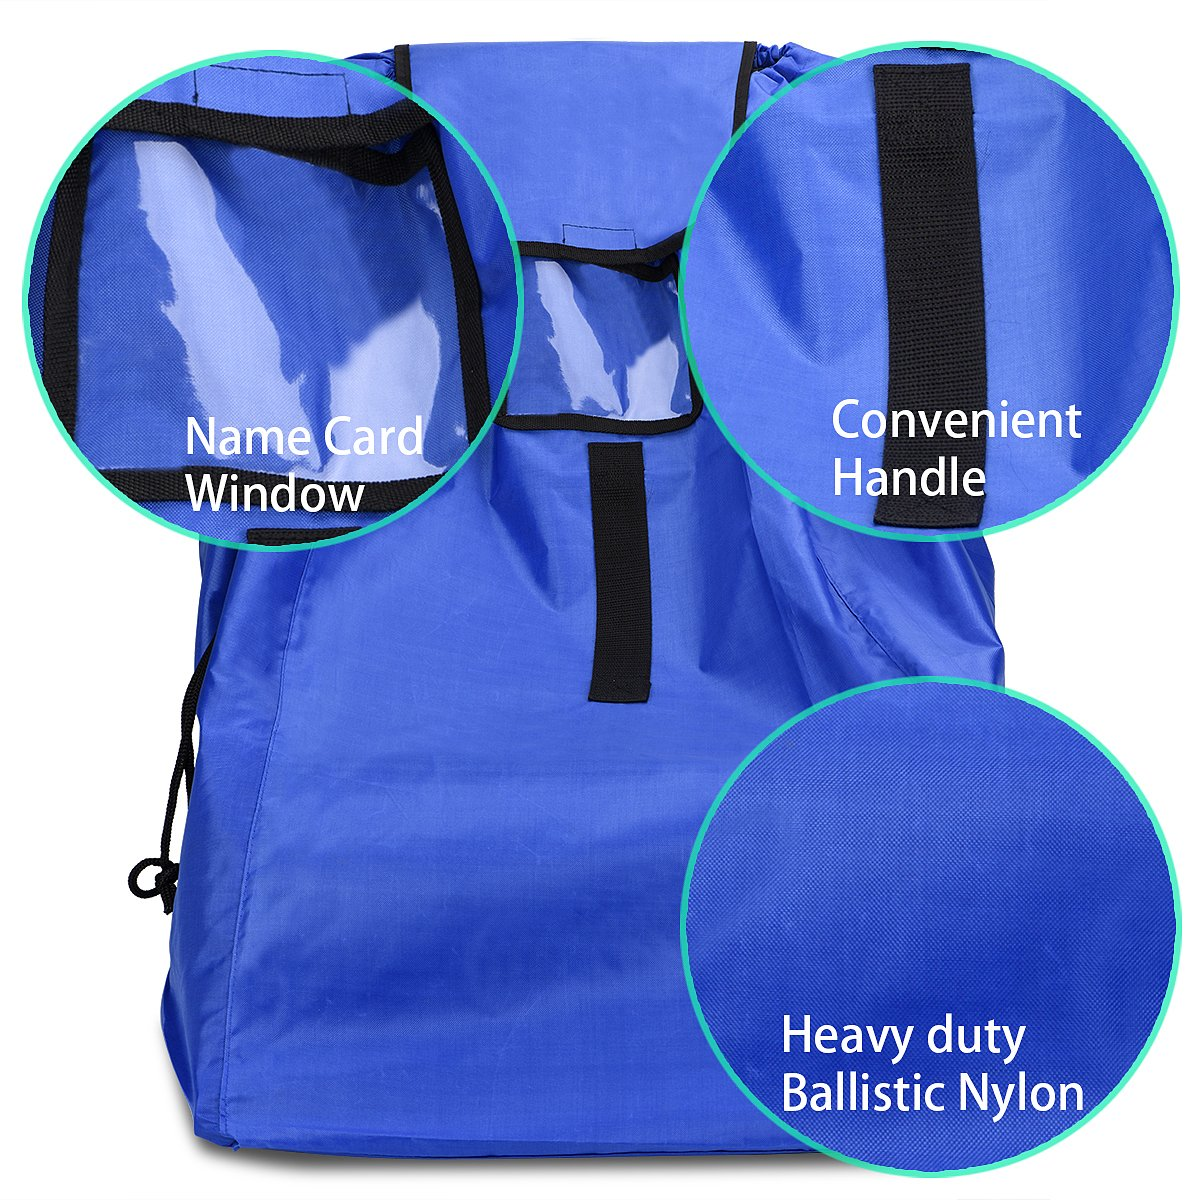 Car Seat Travel Bag, Airport Gate Check Bag with Easy-to-Carry Backpack Style Shoulder Straps Check Your Cars seat in Flight,420D Blue